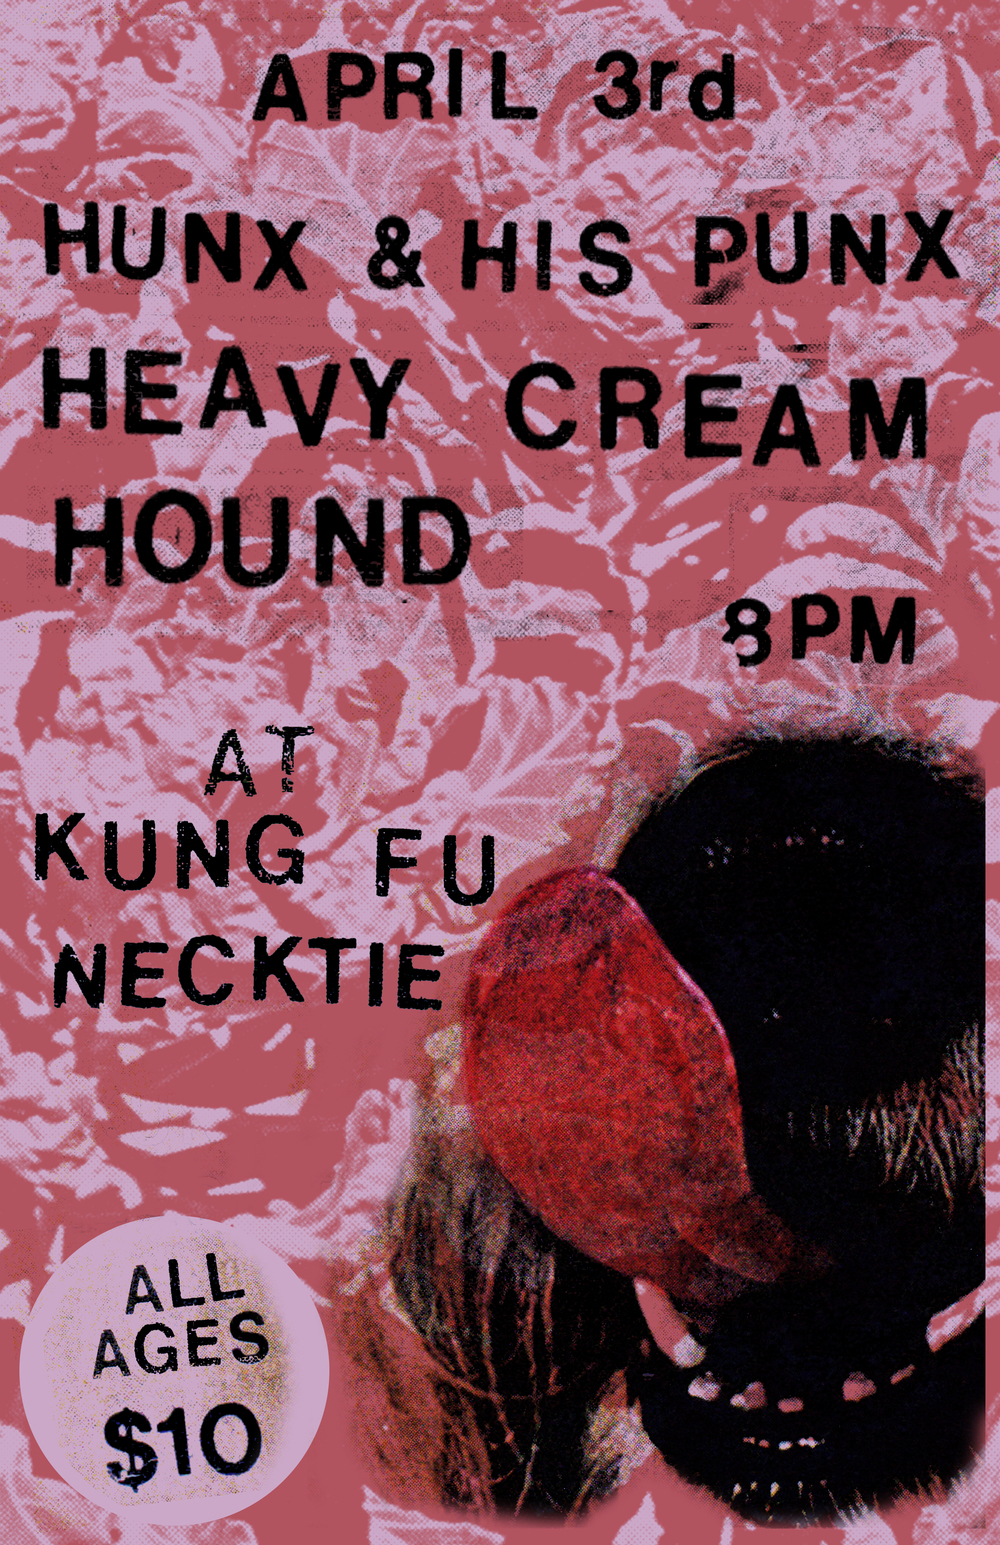 hunx heavy cream poster.jpg